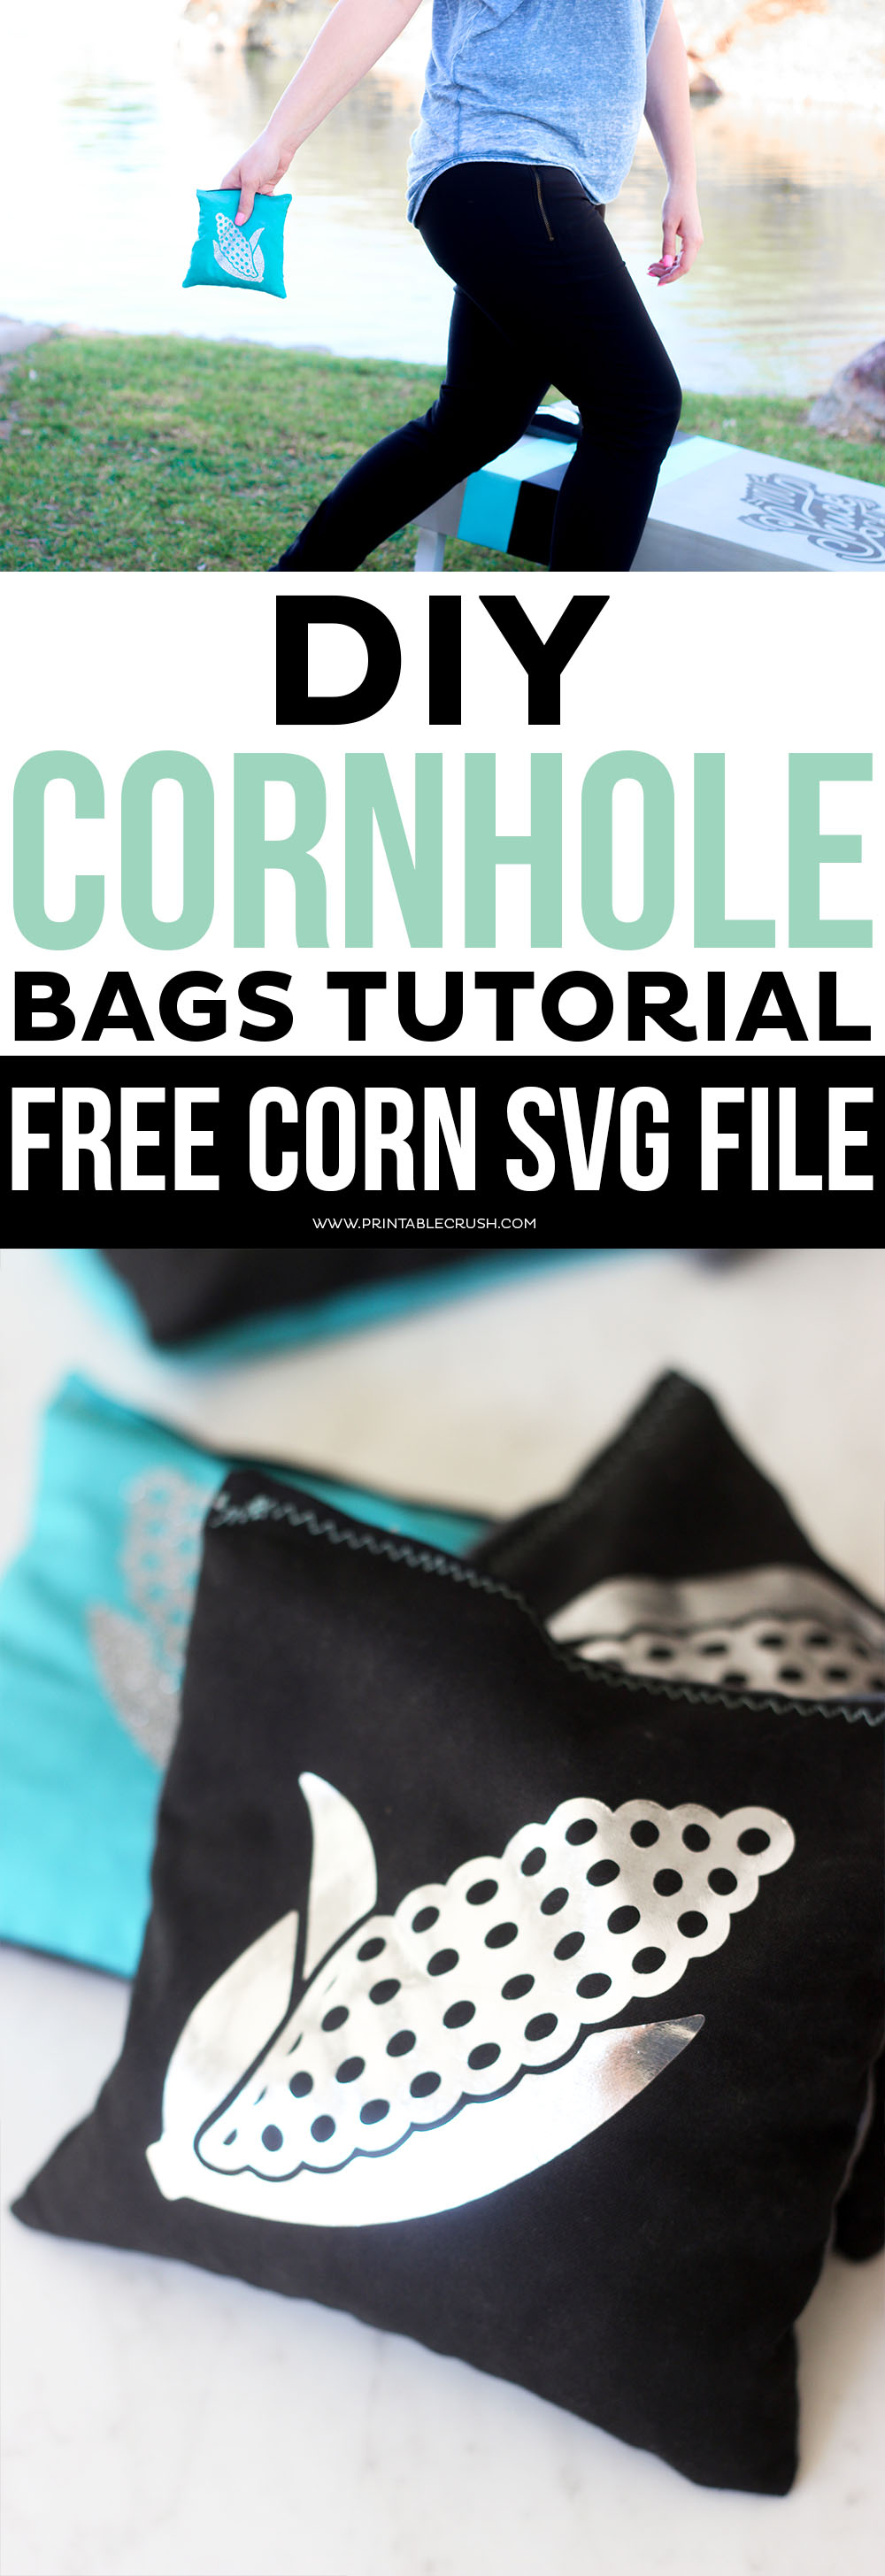 This DIY Cornhole Bags Tutorial will show you how to cut out the pattern with the Cricut Maker, and personalize them with the EasyPress! Includes a FREE Corn on the Cob SVG File.